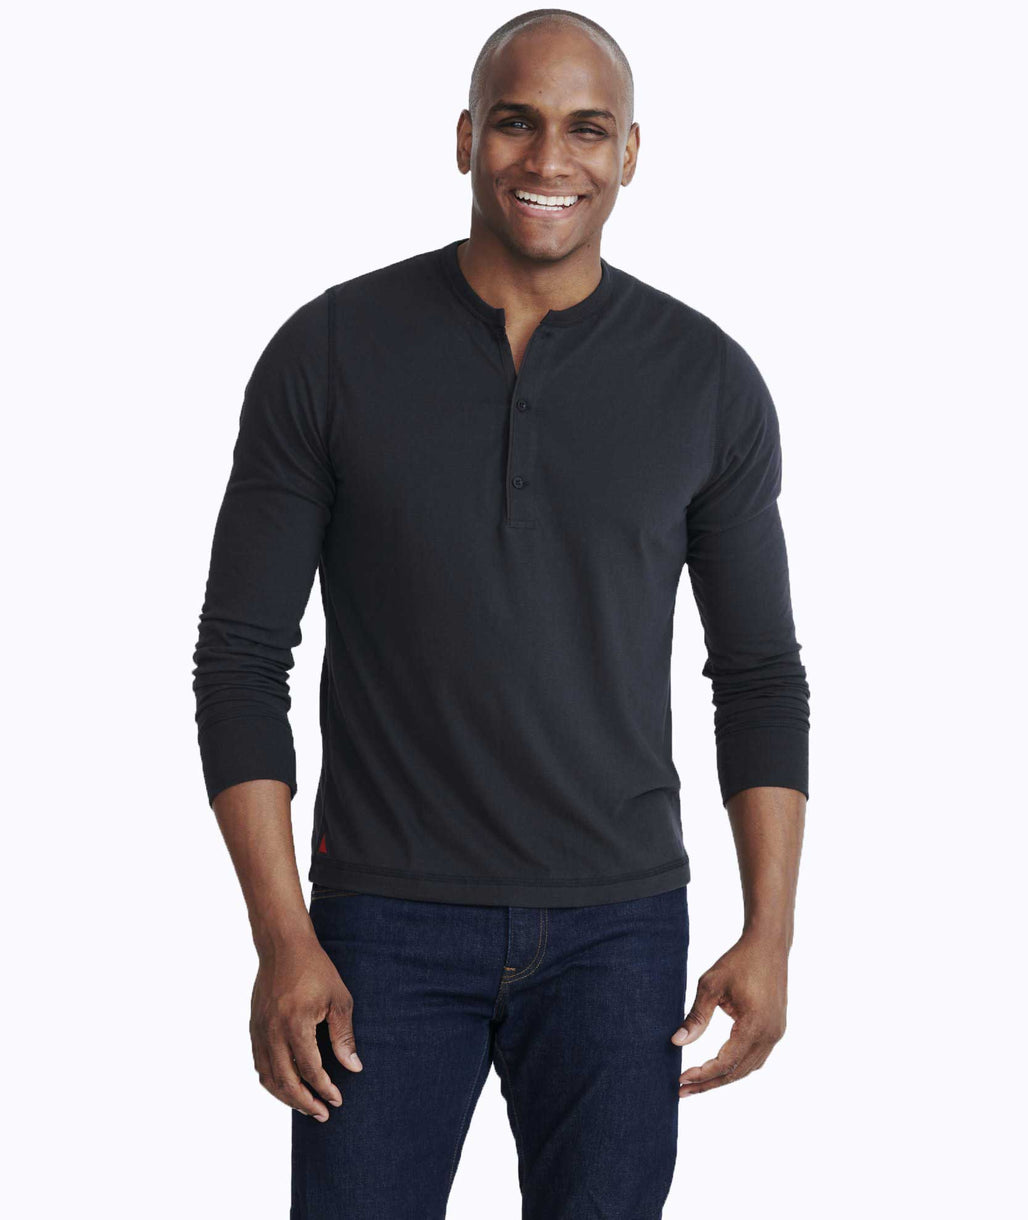 Model wearing a Black Ultrasoft Long-Sleeve Henley